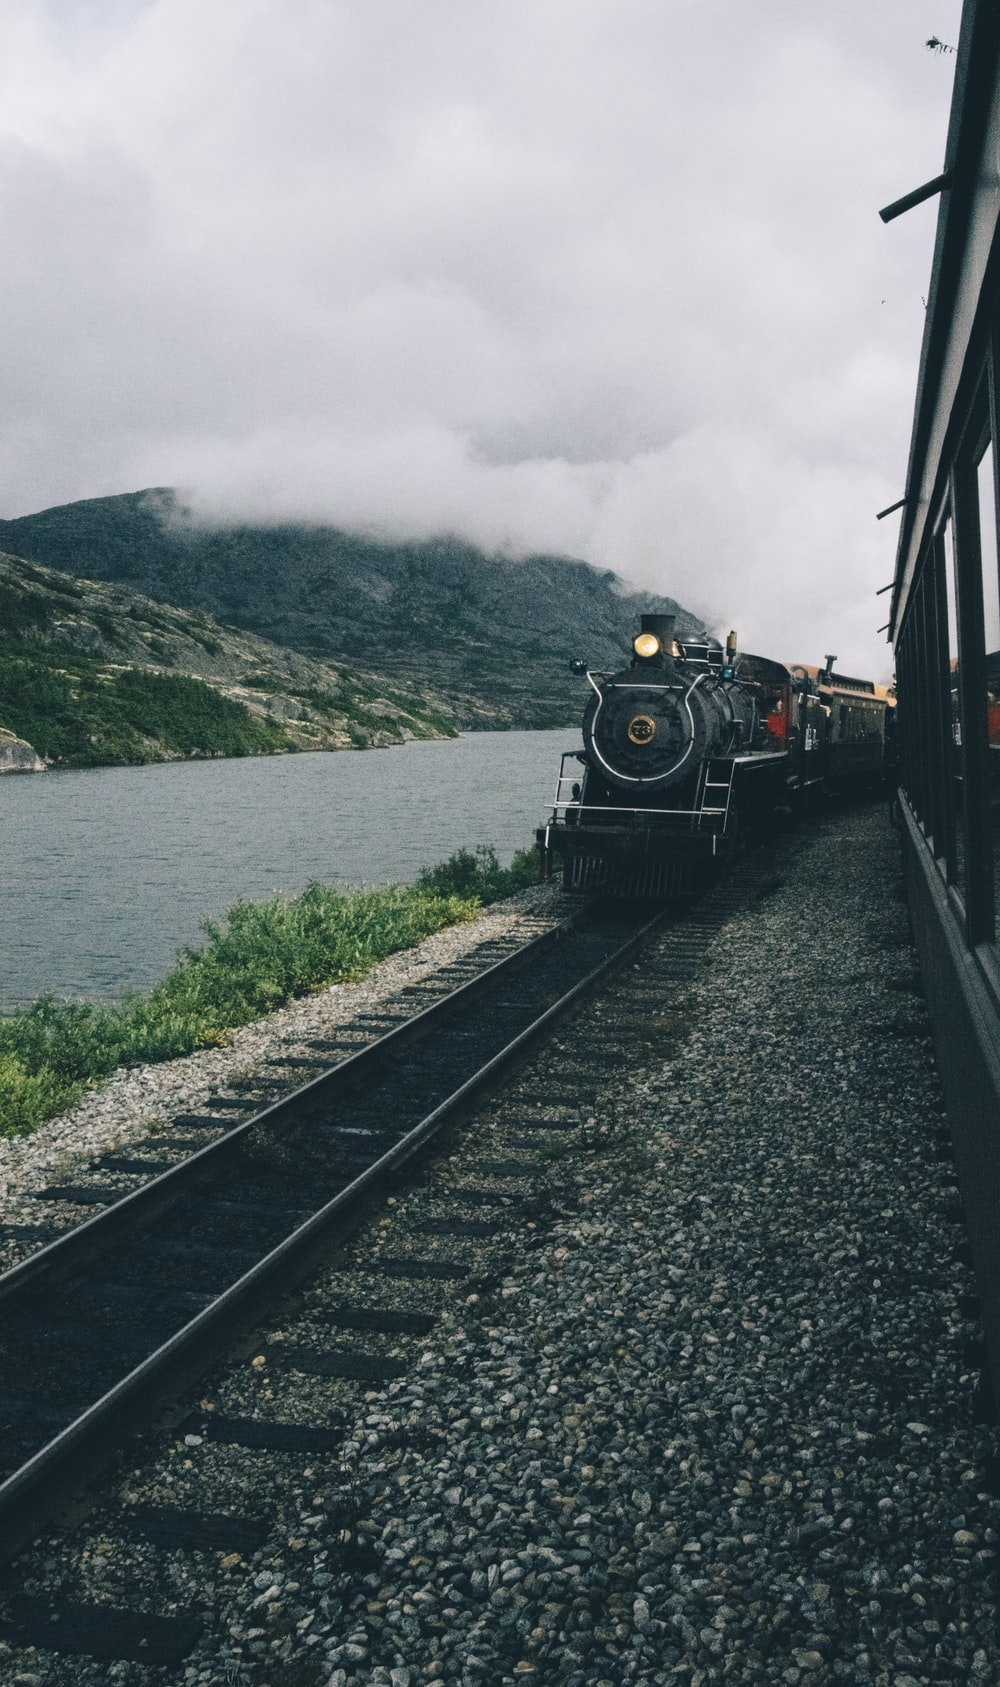 black train passing beside body of water under cloudy sky during daytime